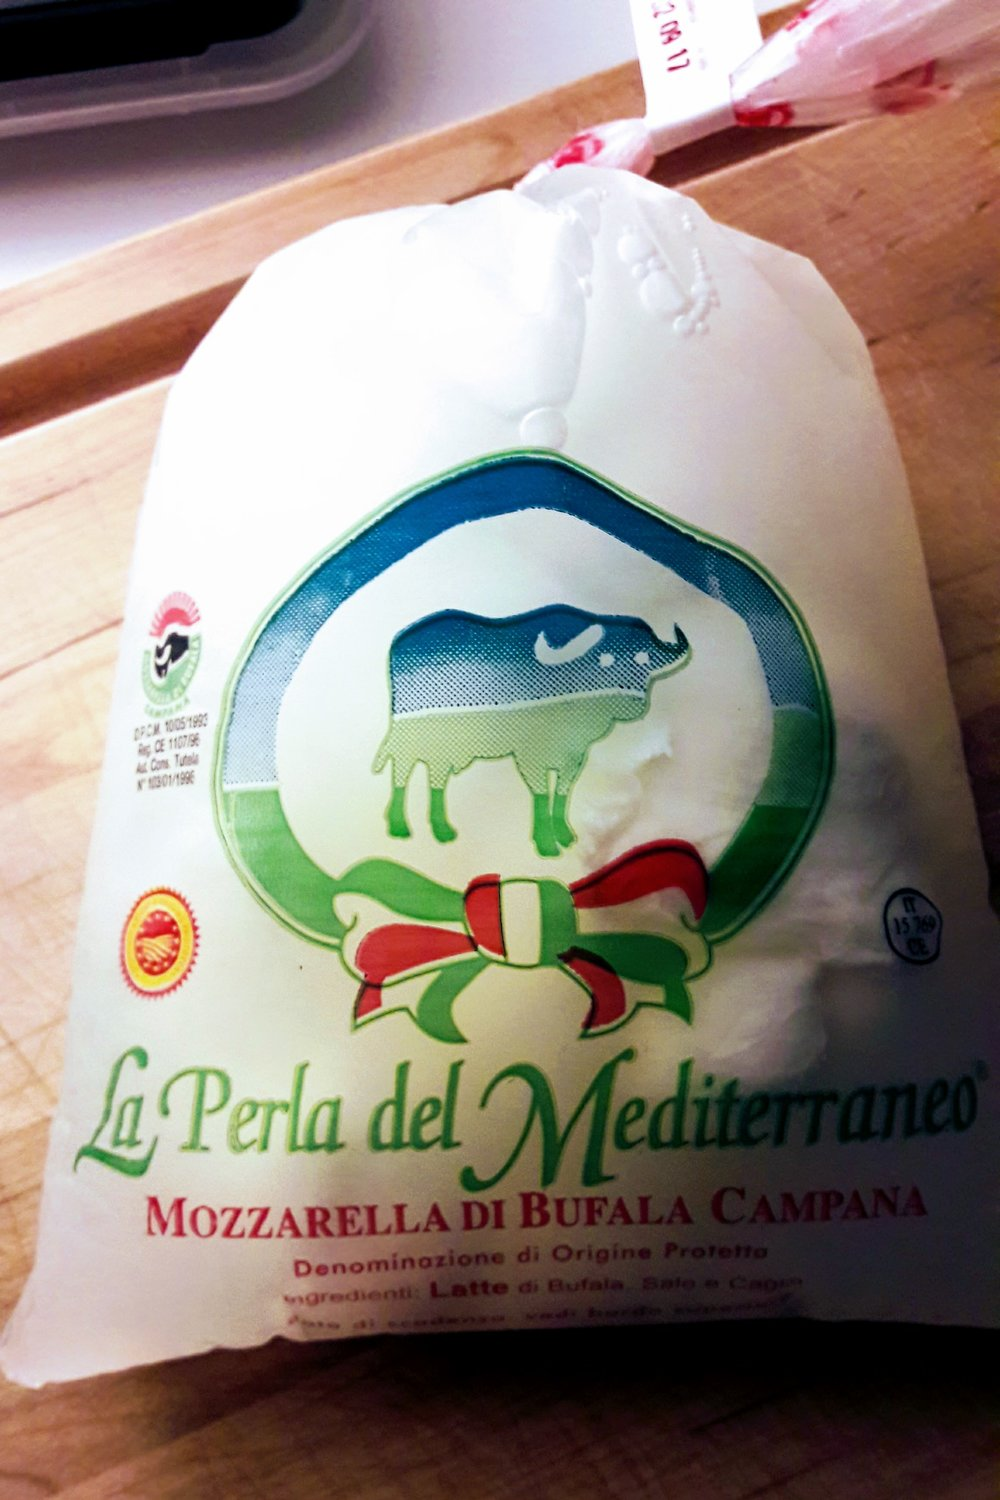 Fresh mozzarella in its brine. This one was made not far from the Mediterranean Sea in the Italian region of Campania, not far from the gorgeous Amalfi coast.